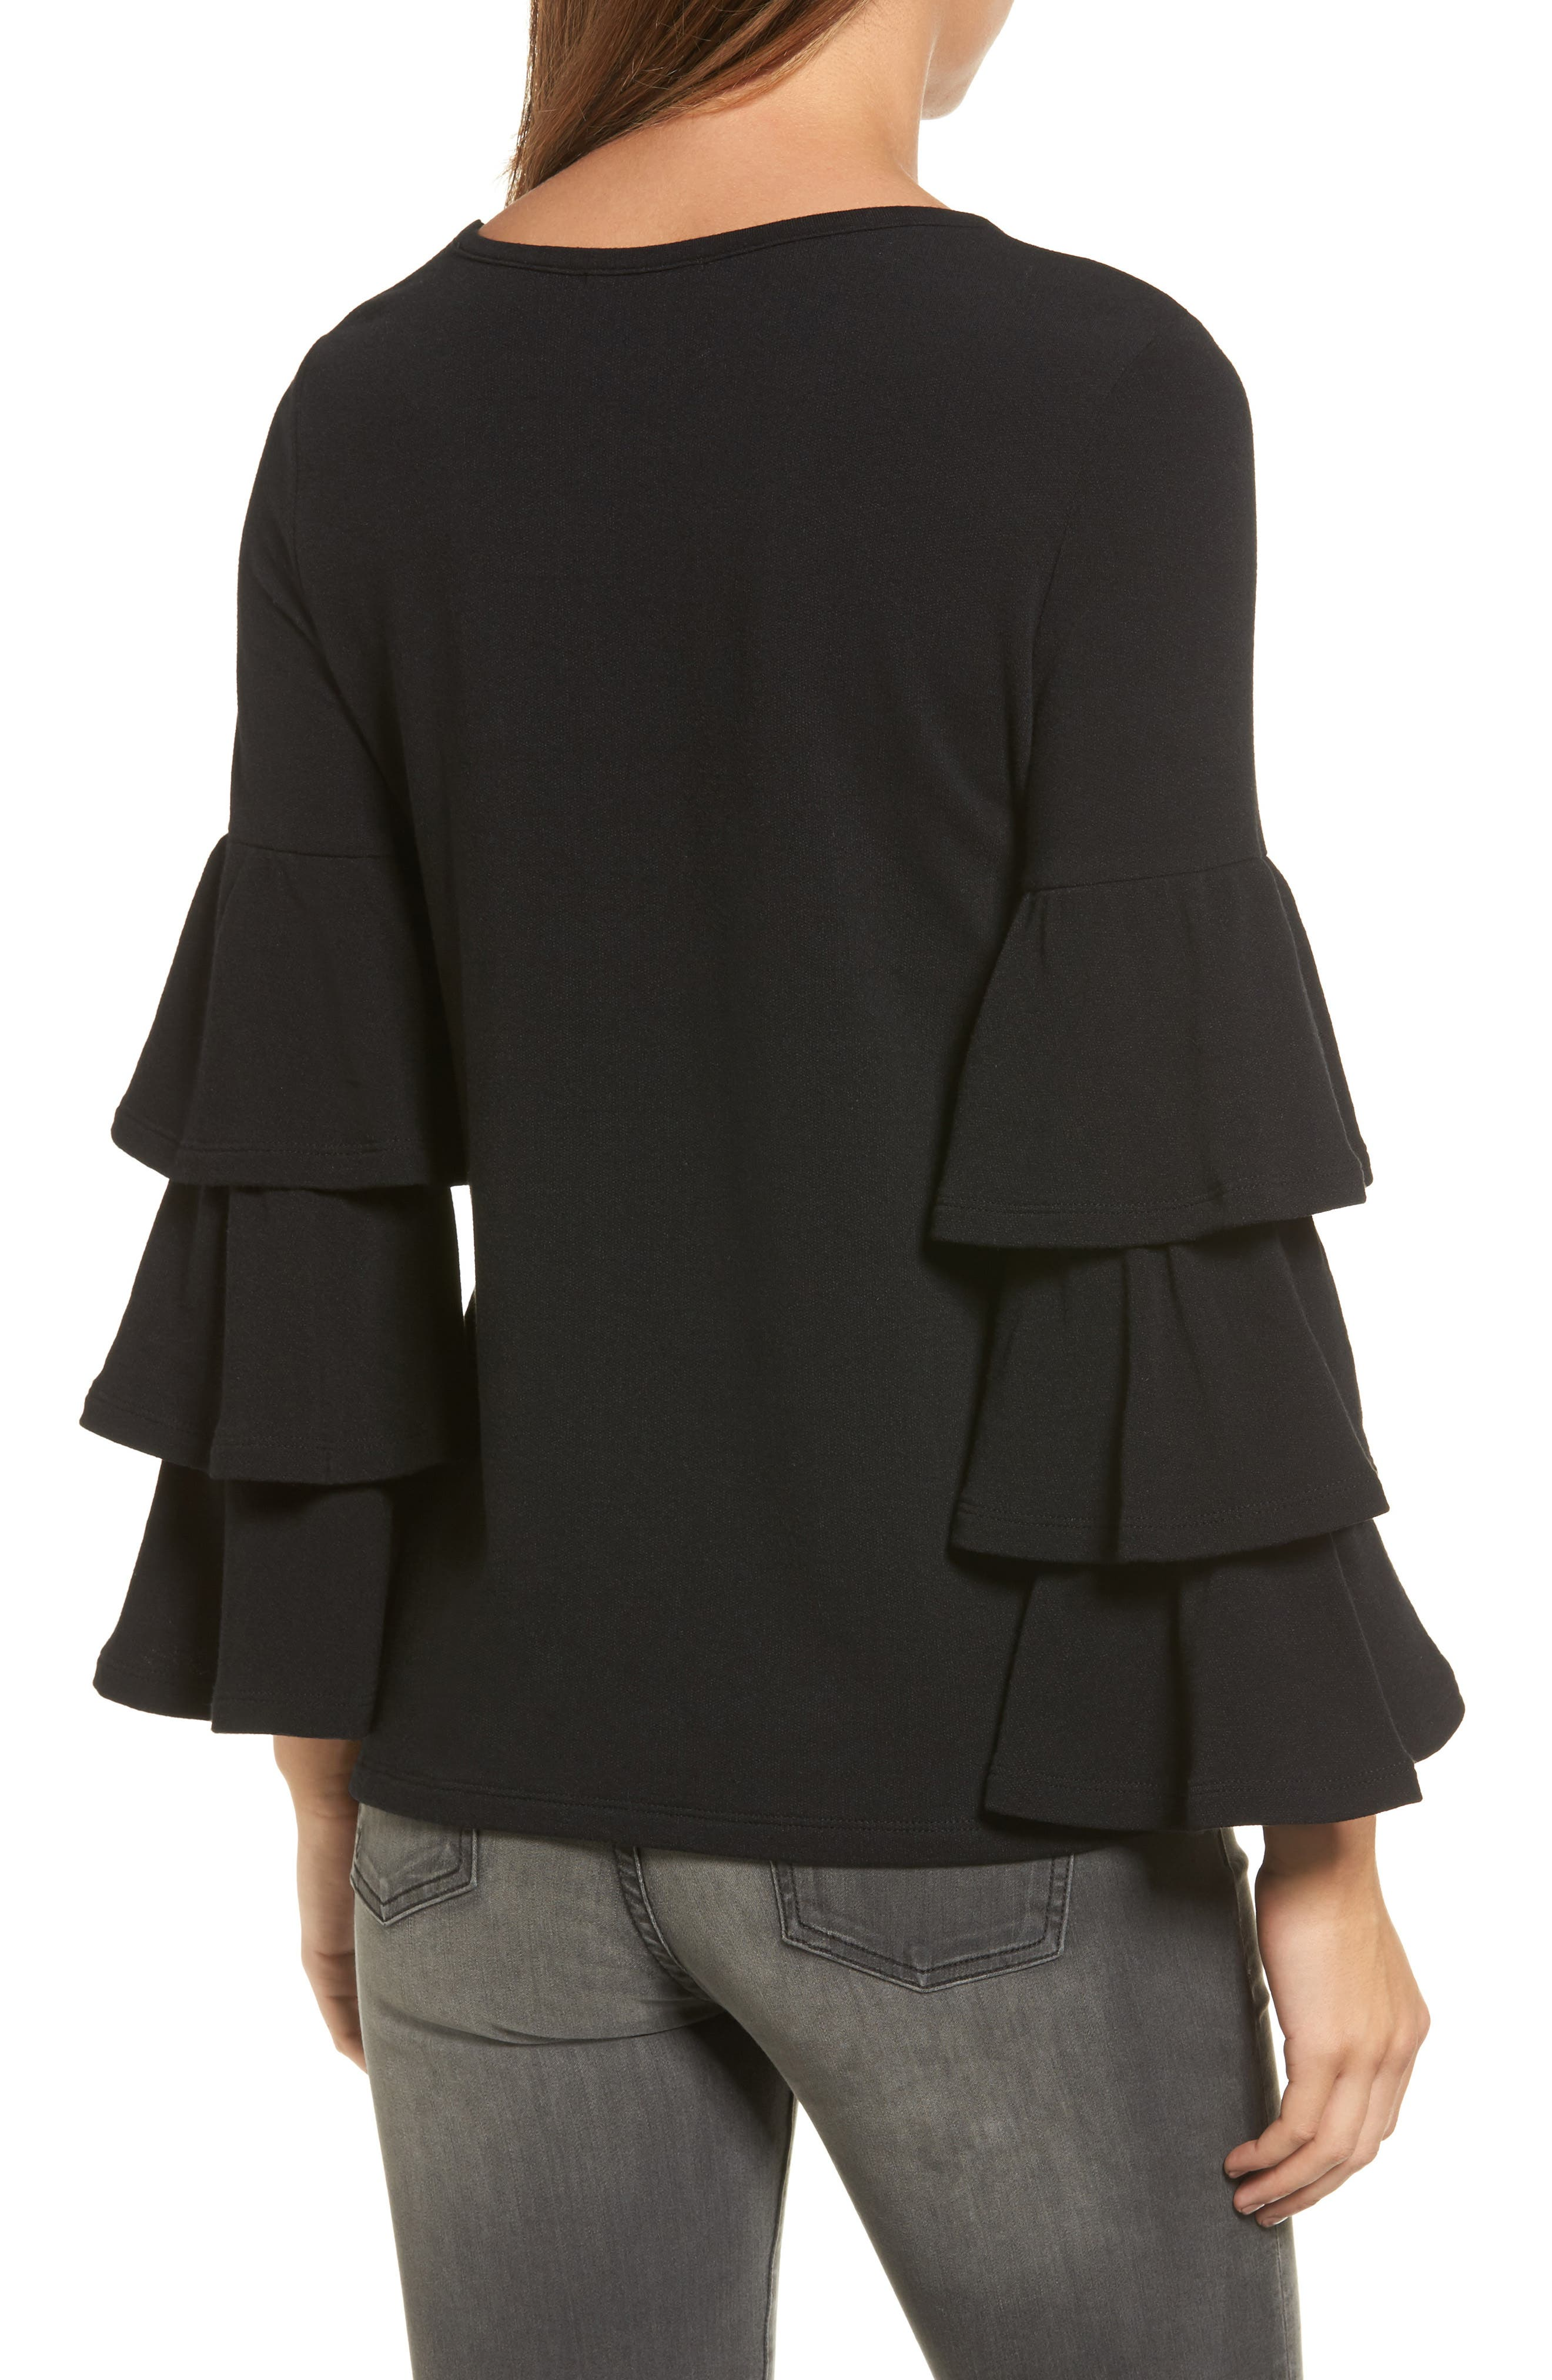 Alternate Image 2  - Pleione Tiered Bell Sleeve Knit Top (Regular & Petite)